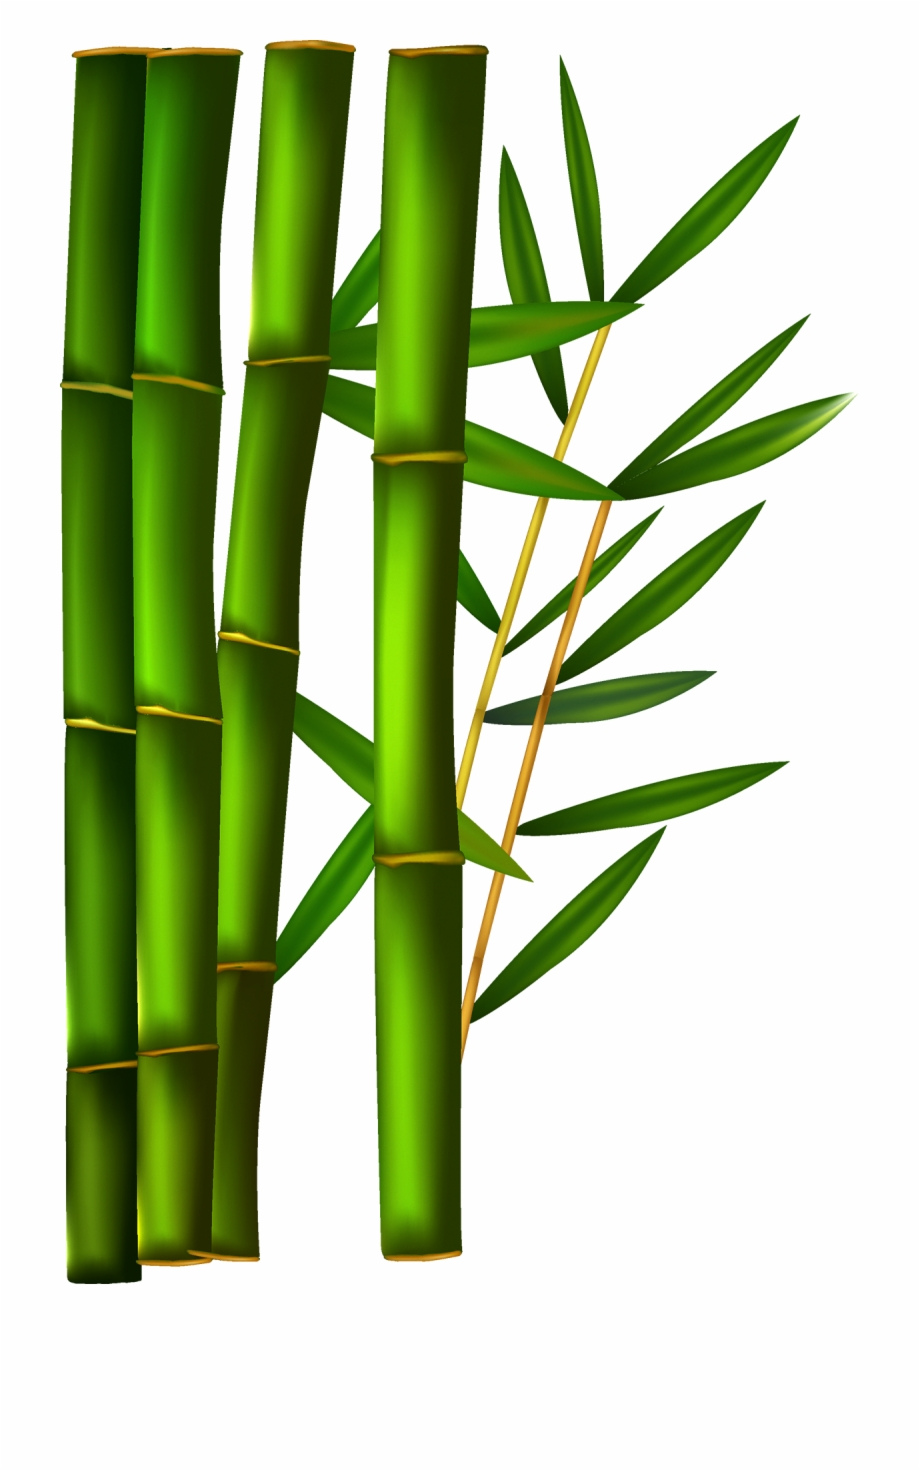 Bamboo clipart. Transparent background free png